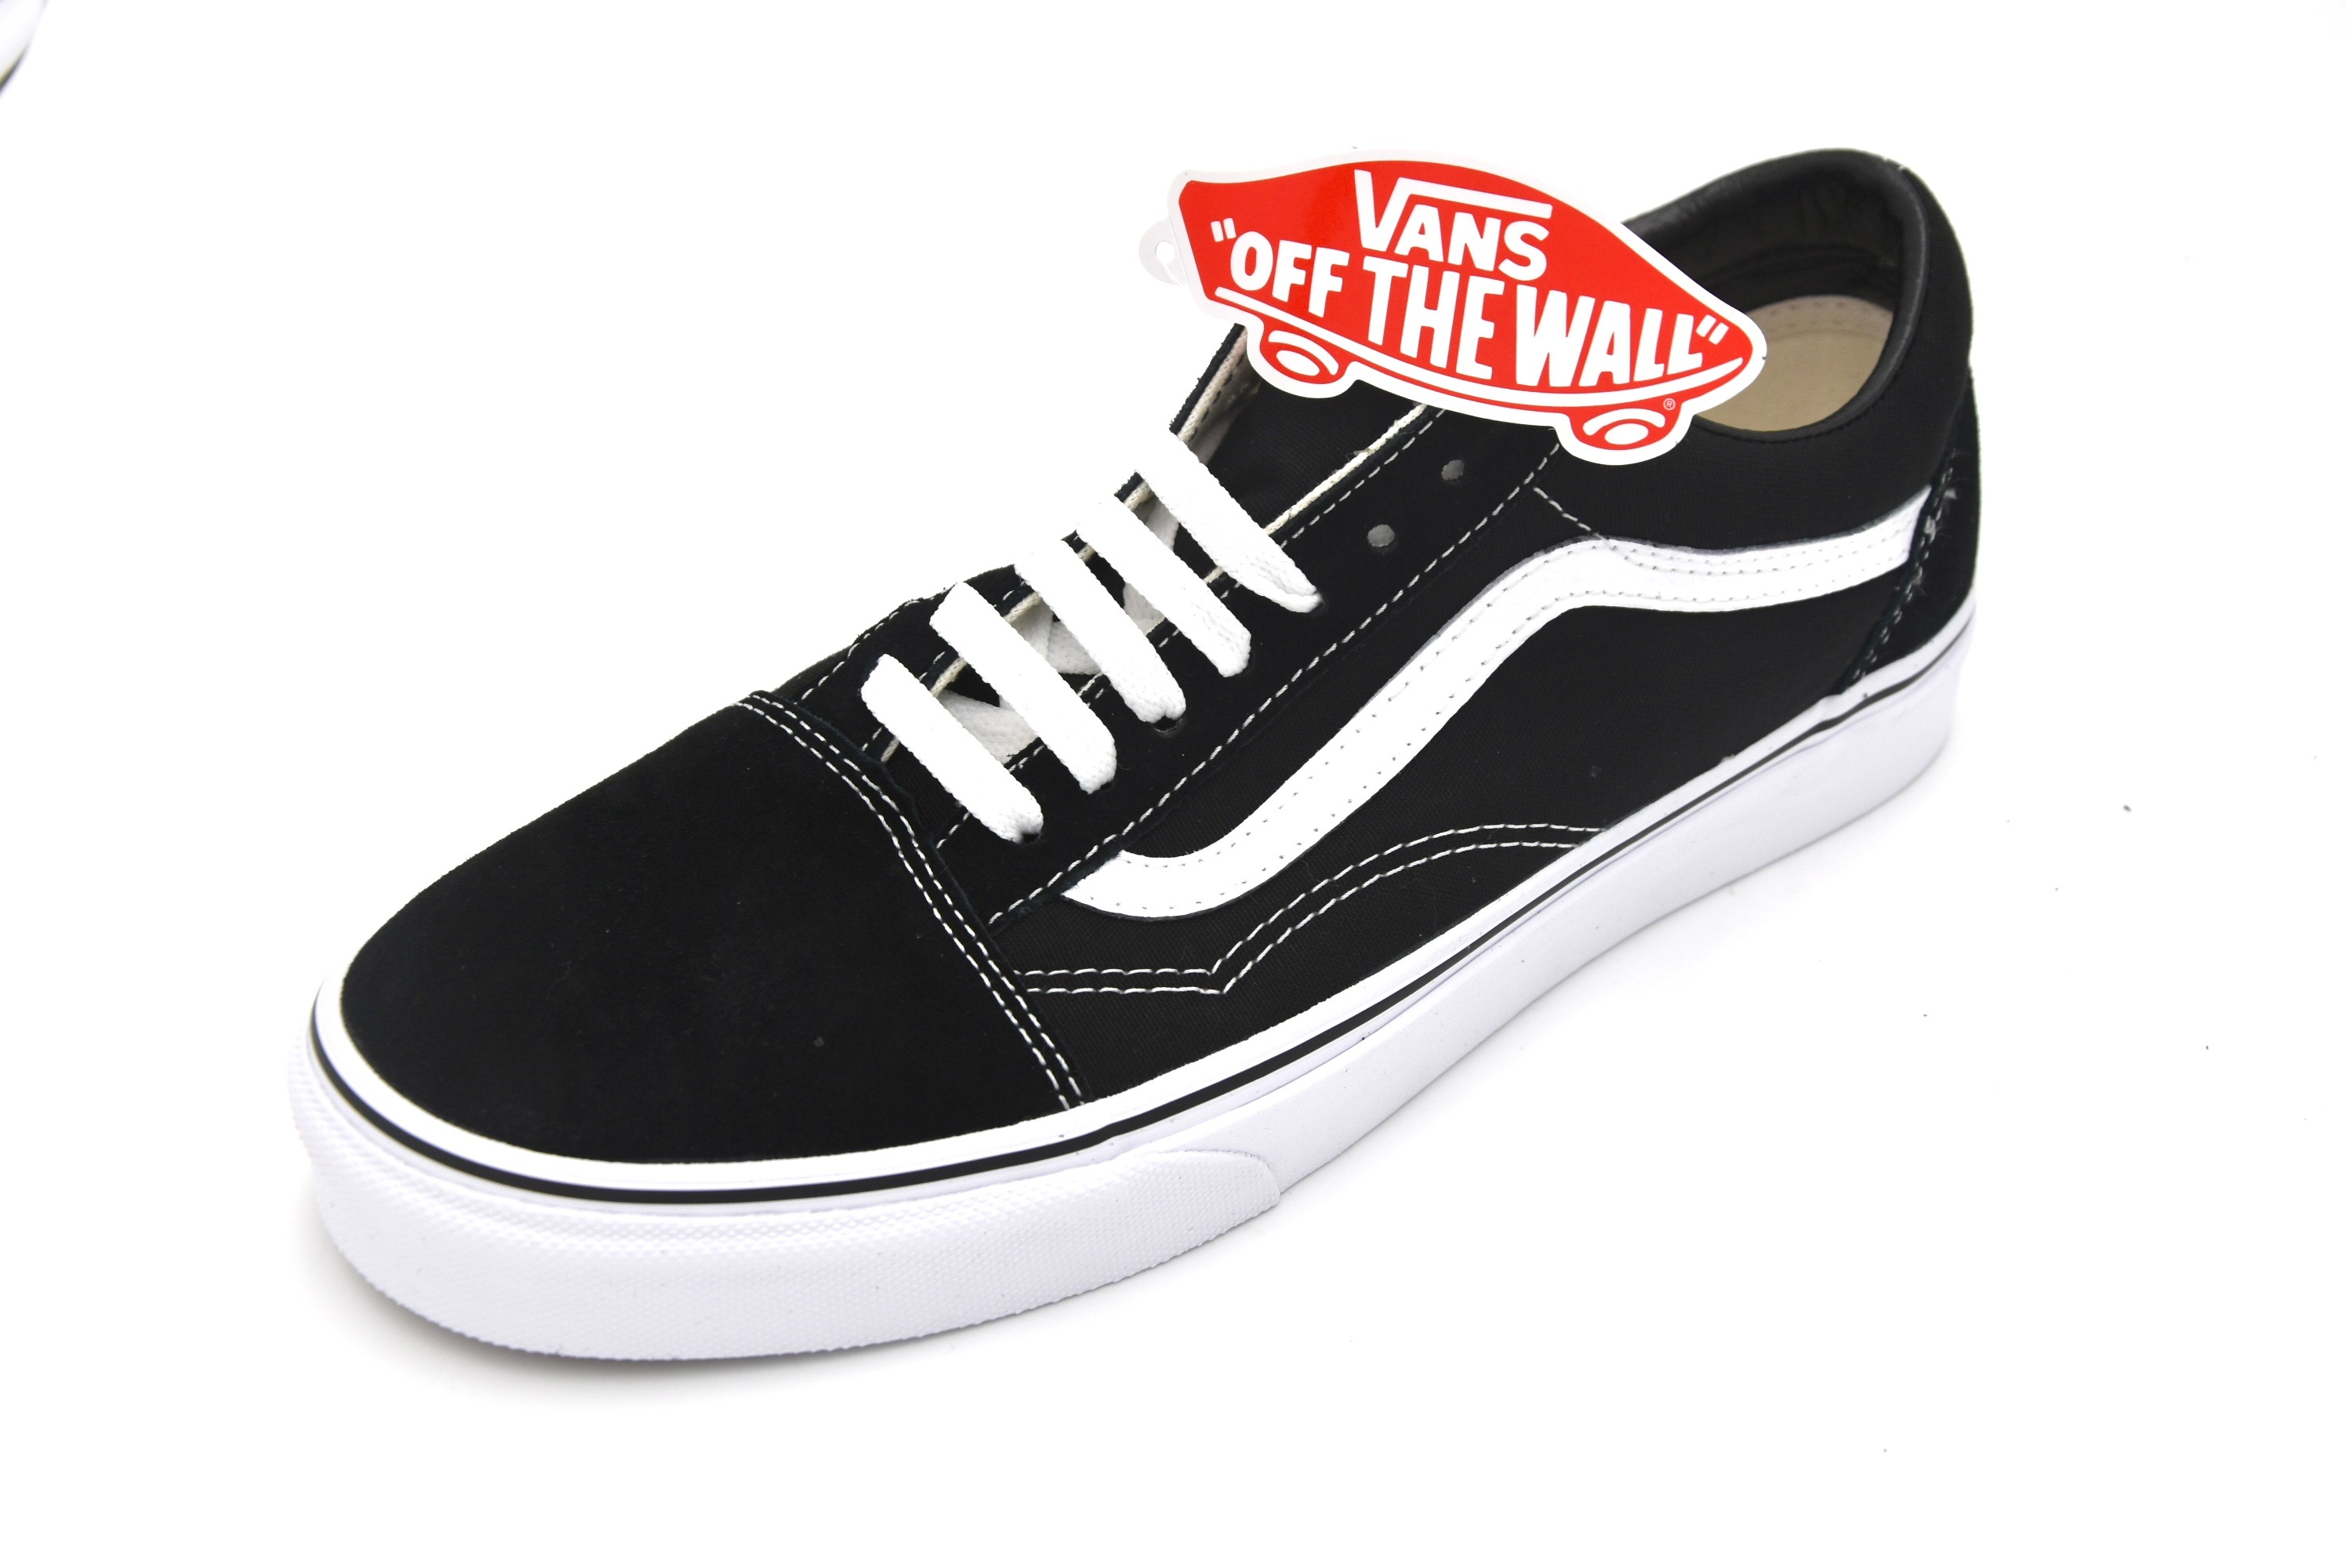 fabea3369a VANS UOMO SCARPA SNEAKER CASUAL TEMPO LIBERO VN000D3HY28 VN000D3HNVY OLD  SKOOL